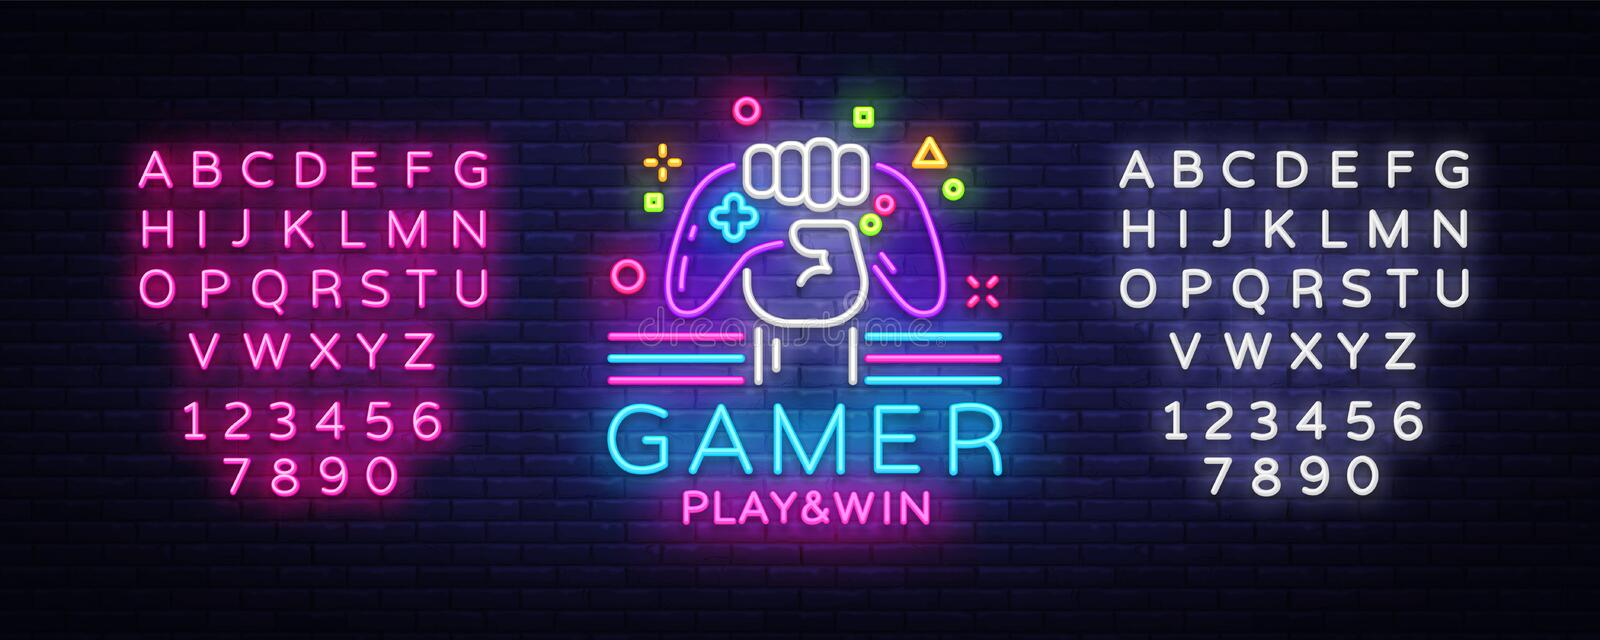 Gamer Play Win logo neon sign Vector logo design template. Game night logo in neon style, gamepad in hand, modern trend. Design, light banner, bright stock illustration